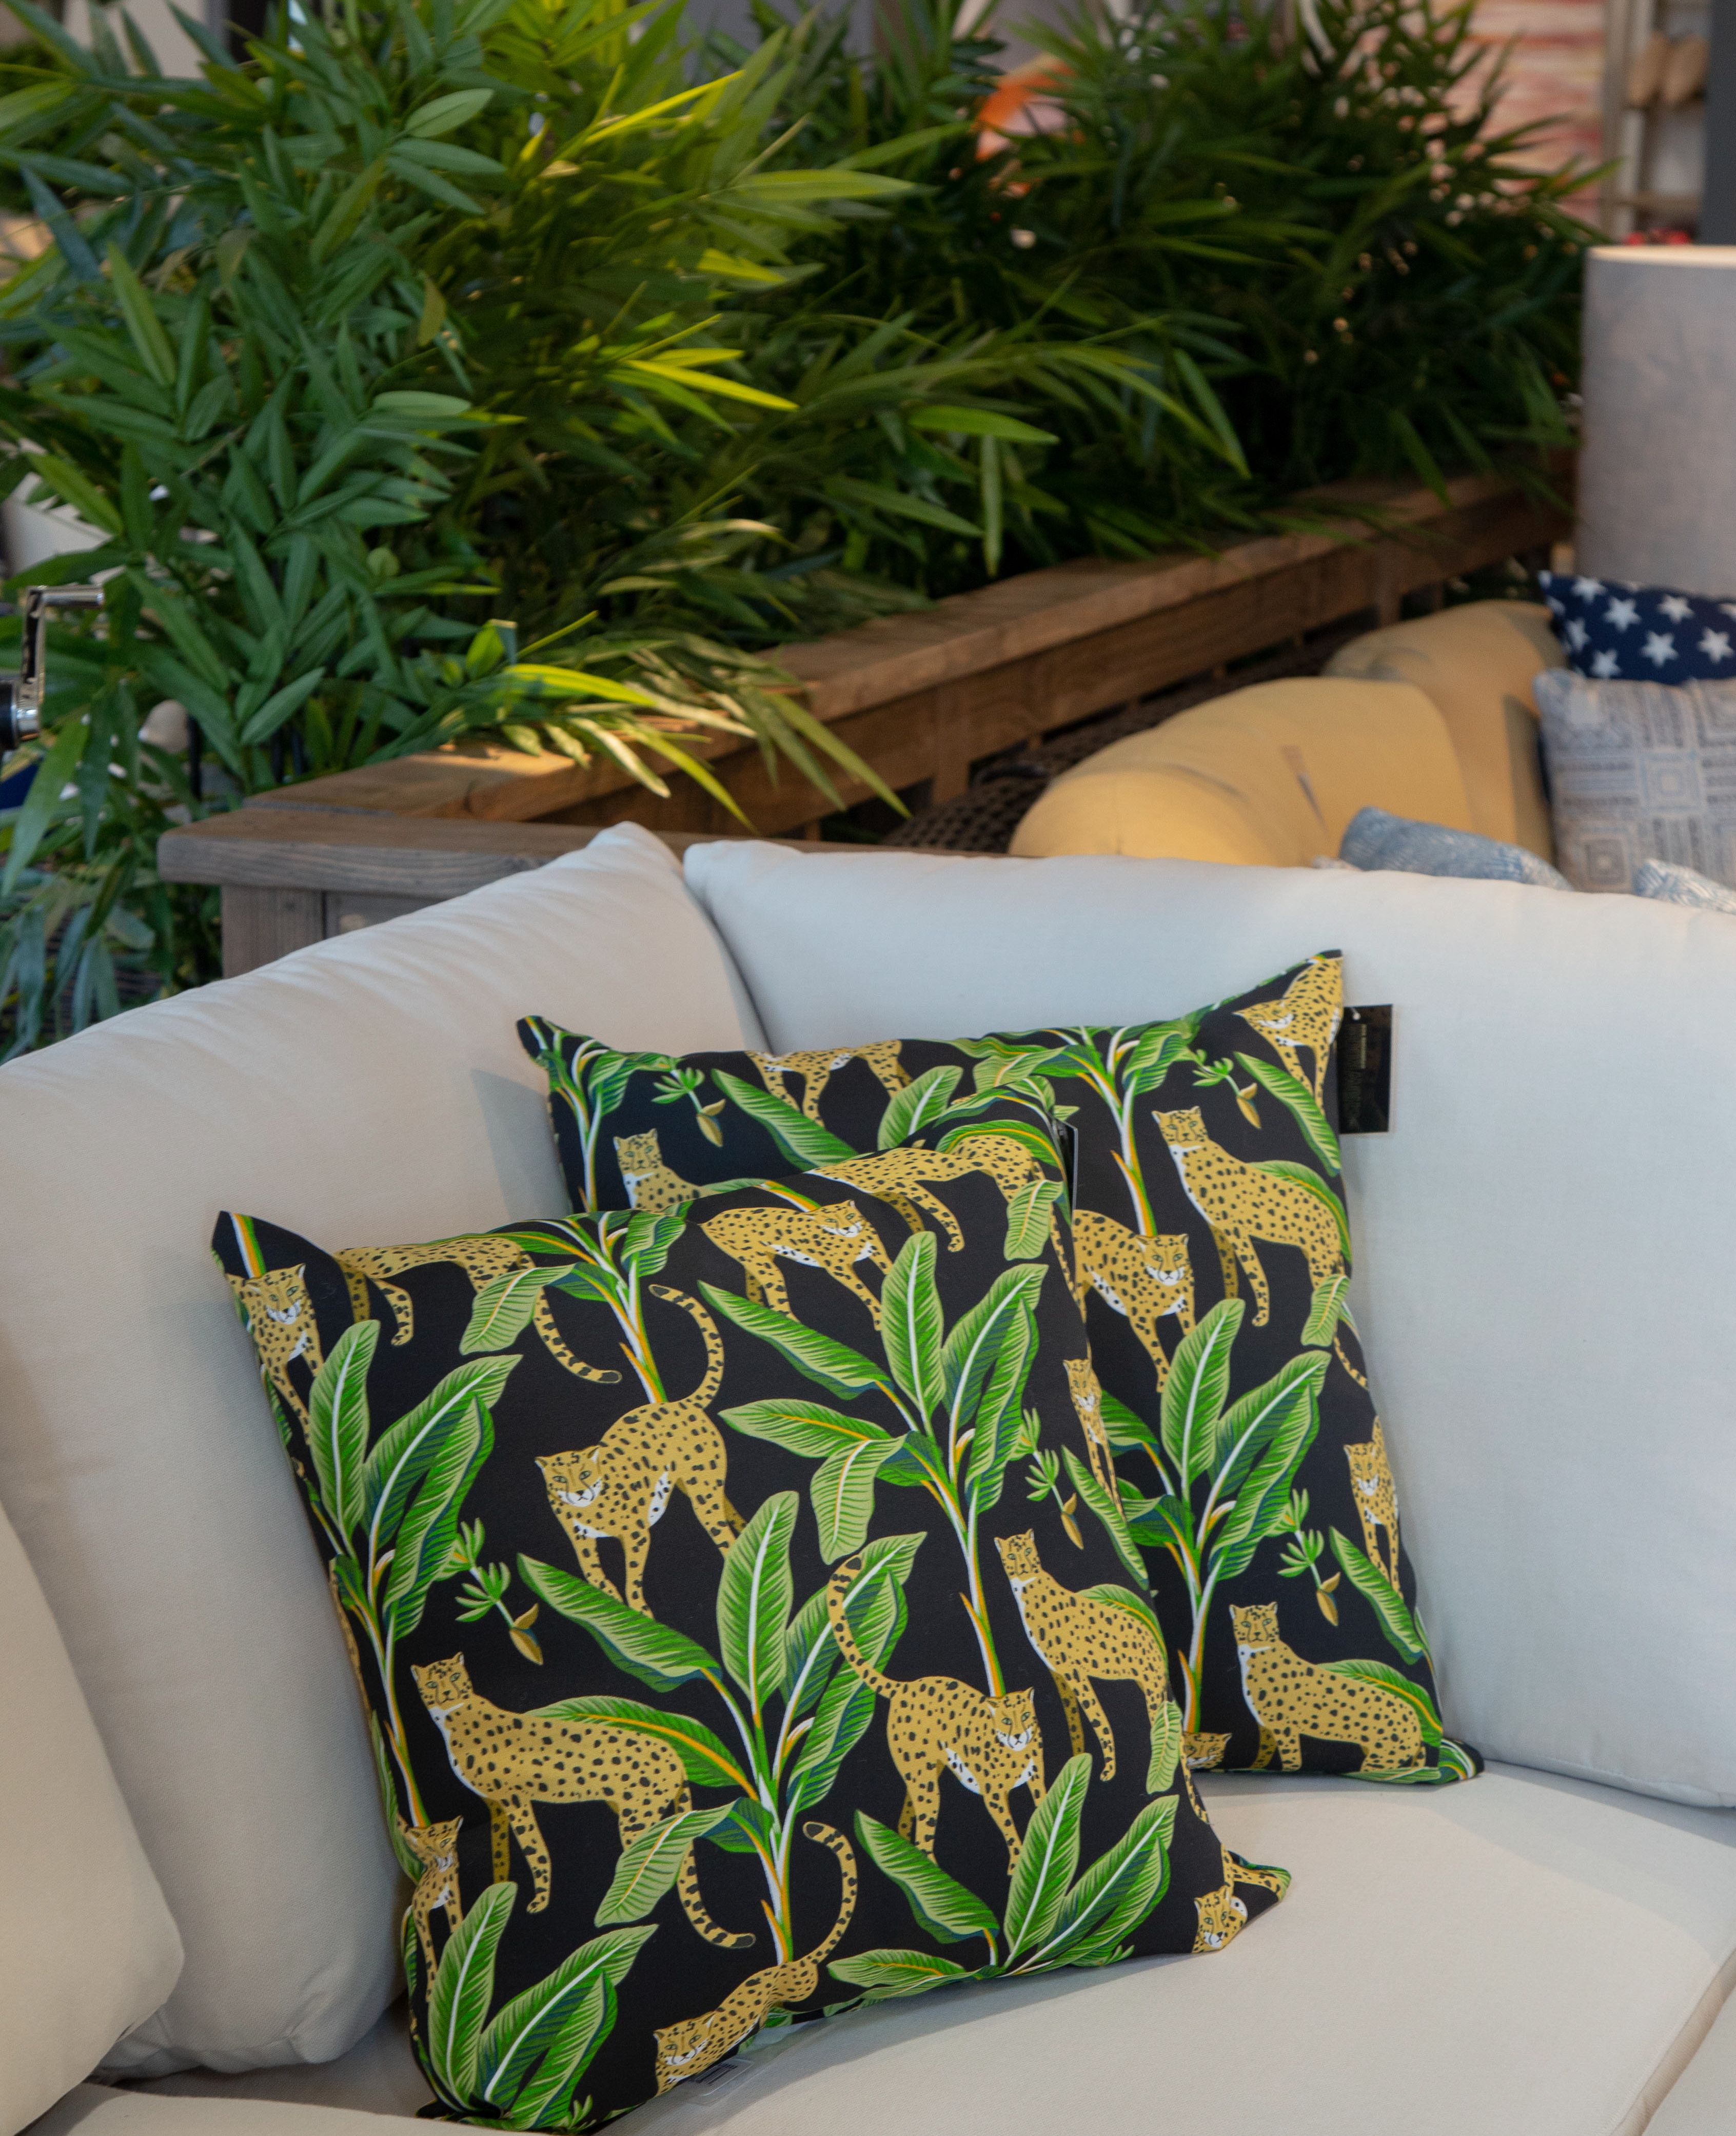 Patio Decor Selection at the Showroom by Furniture Row